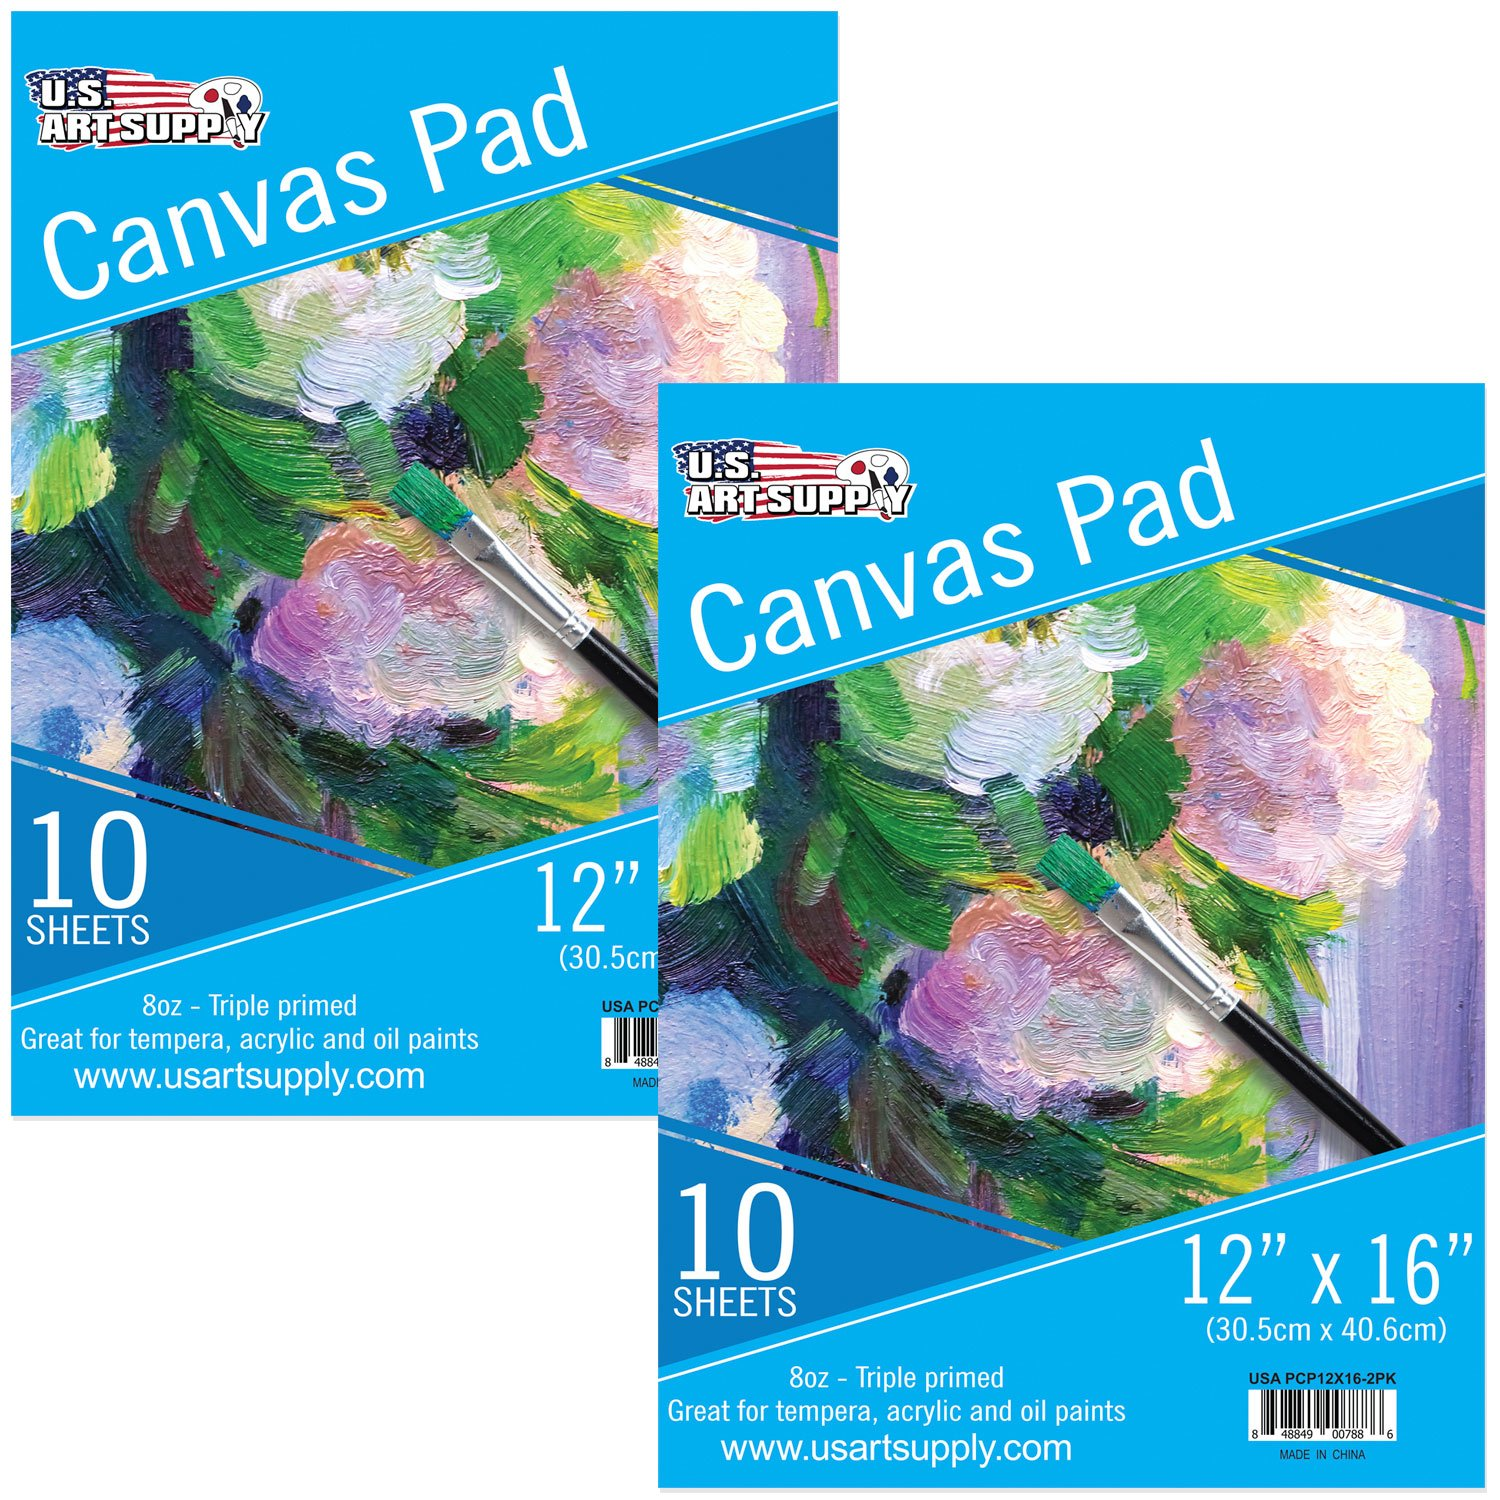 U.S Art Supply 12 x 16 10-Sheet 8-Ounce Triple Primed Acid-Free Canvas Paper Pad Pack of 2 Pads